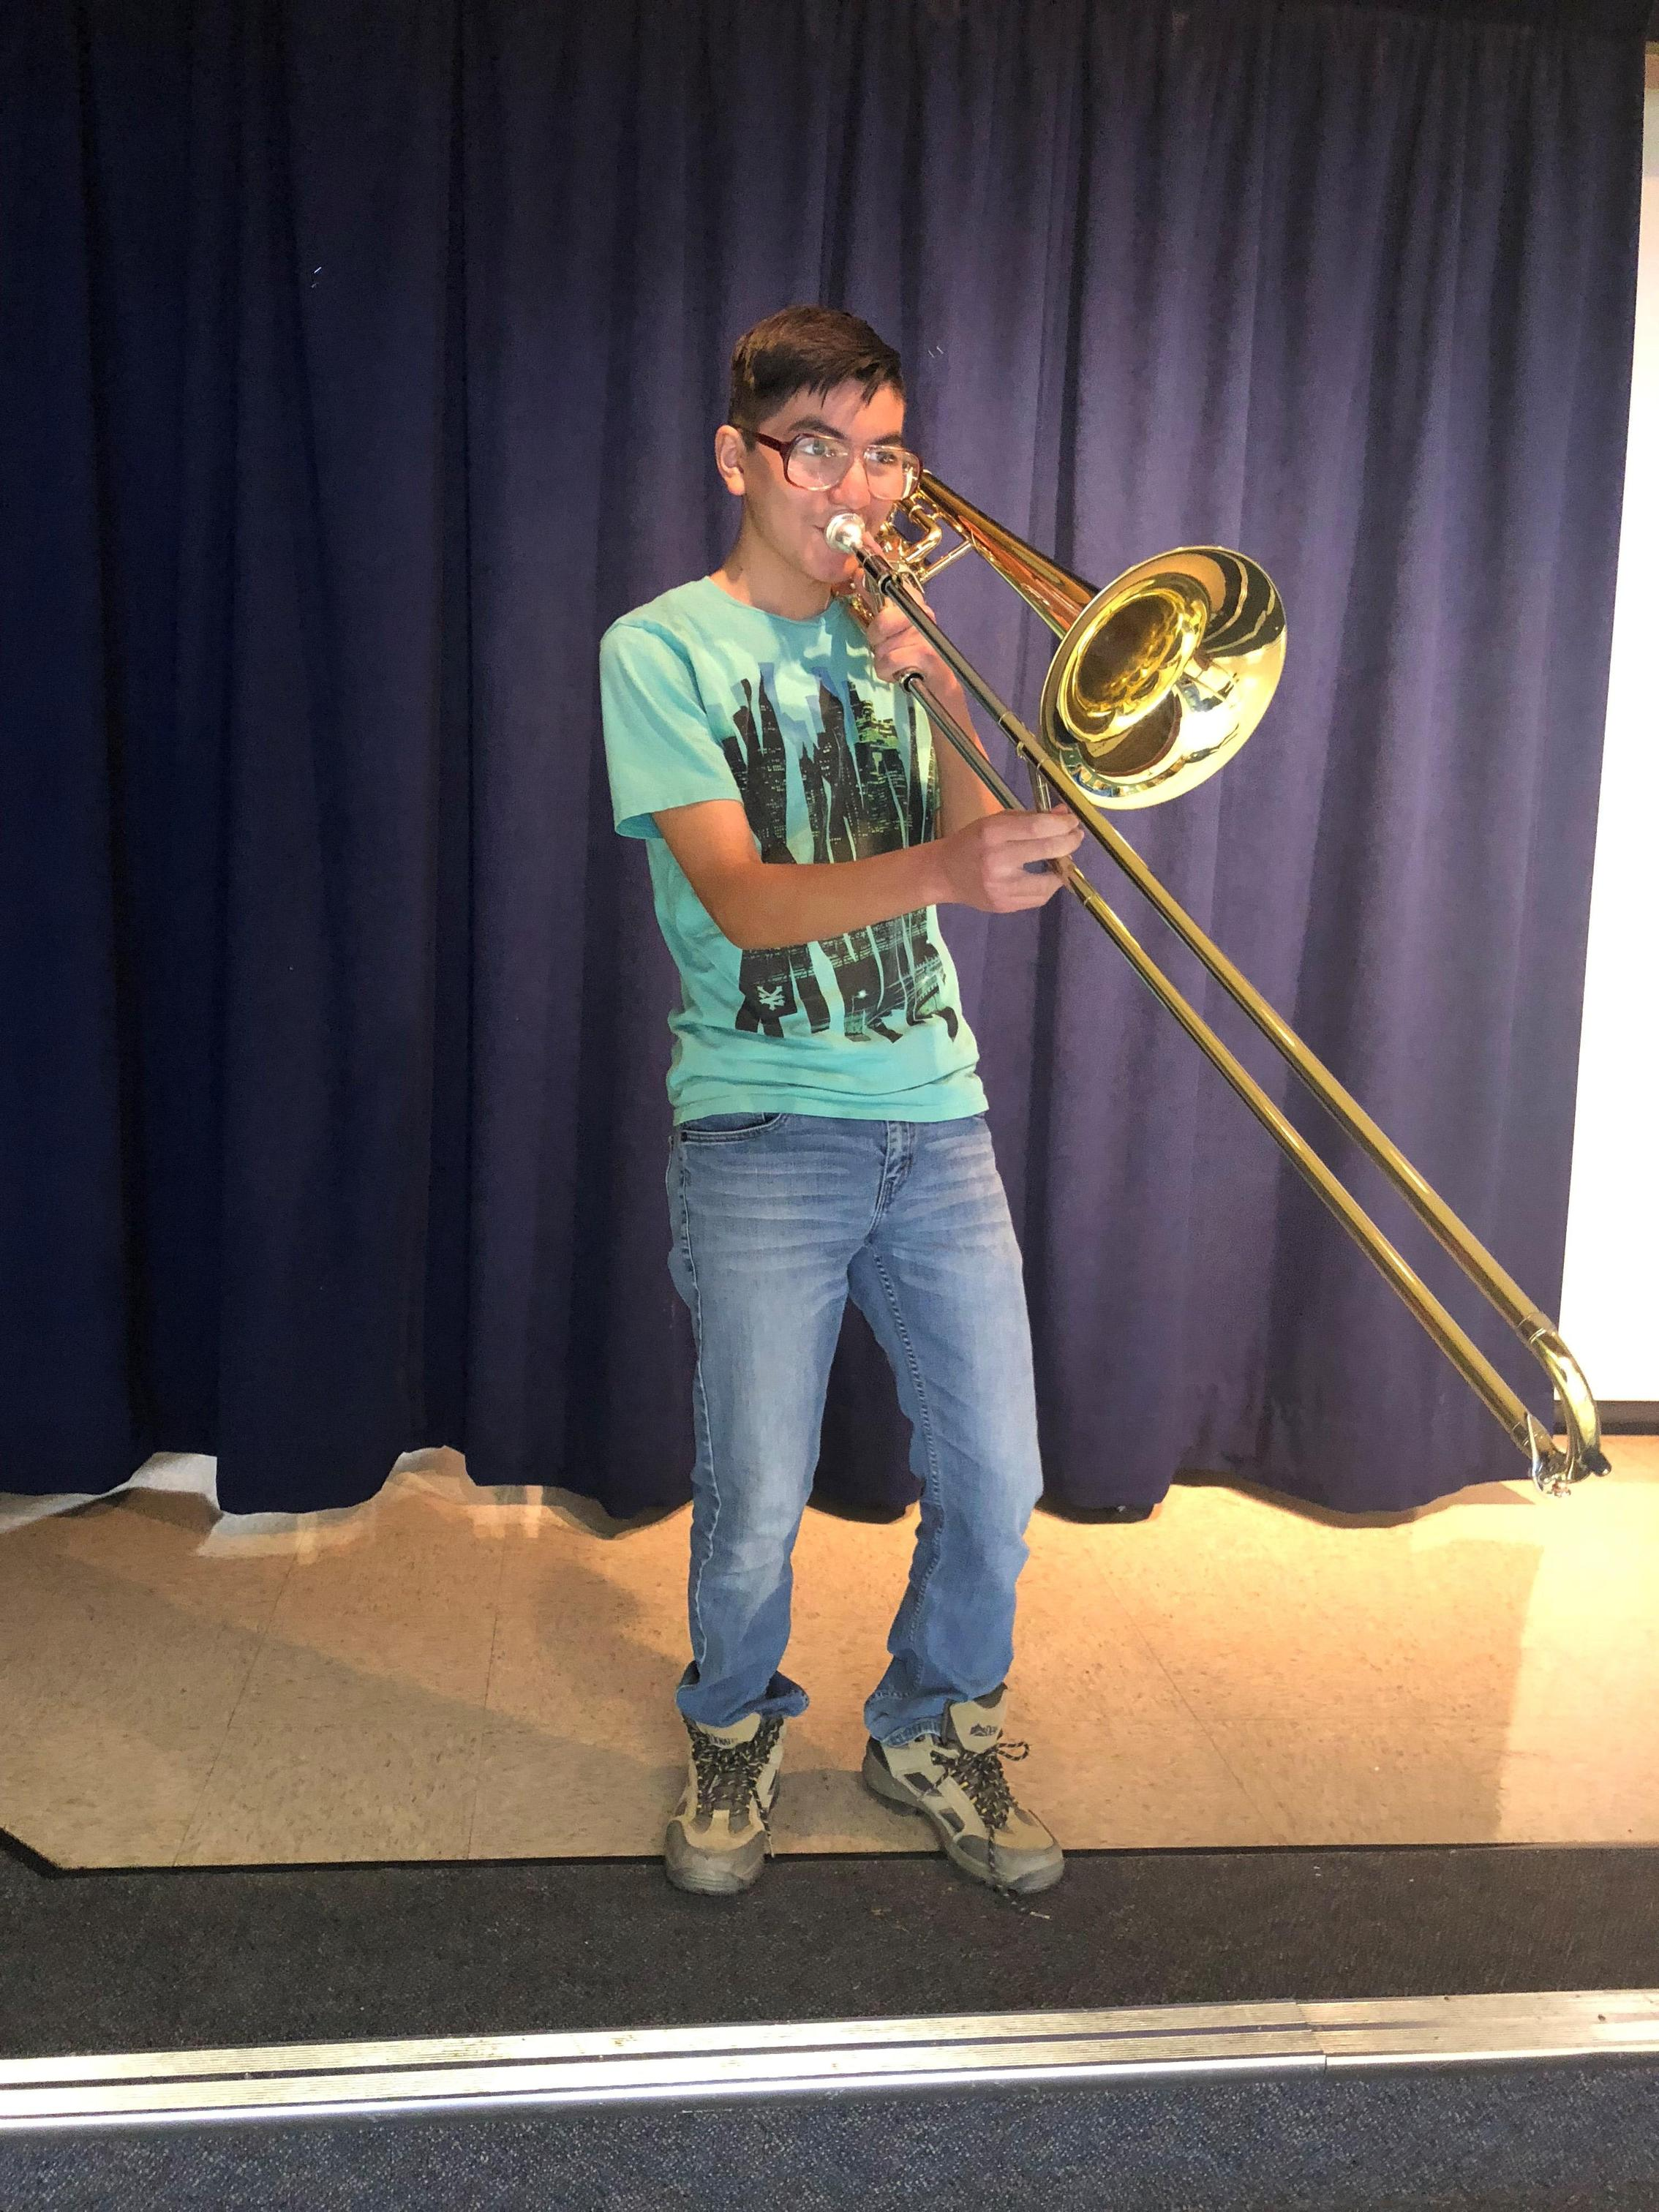 Alexander Gonzalez Playing Trumpet